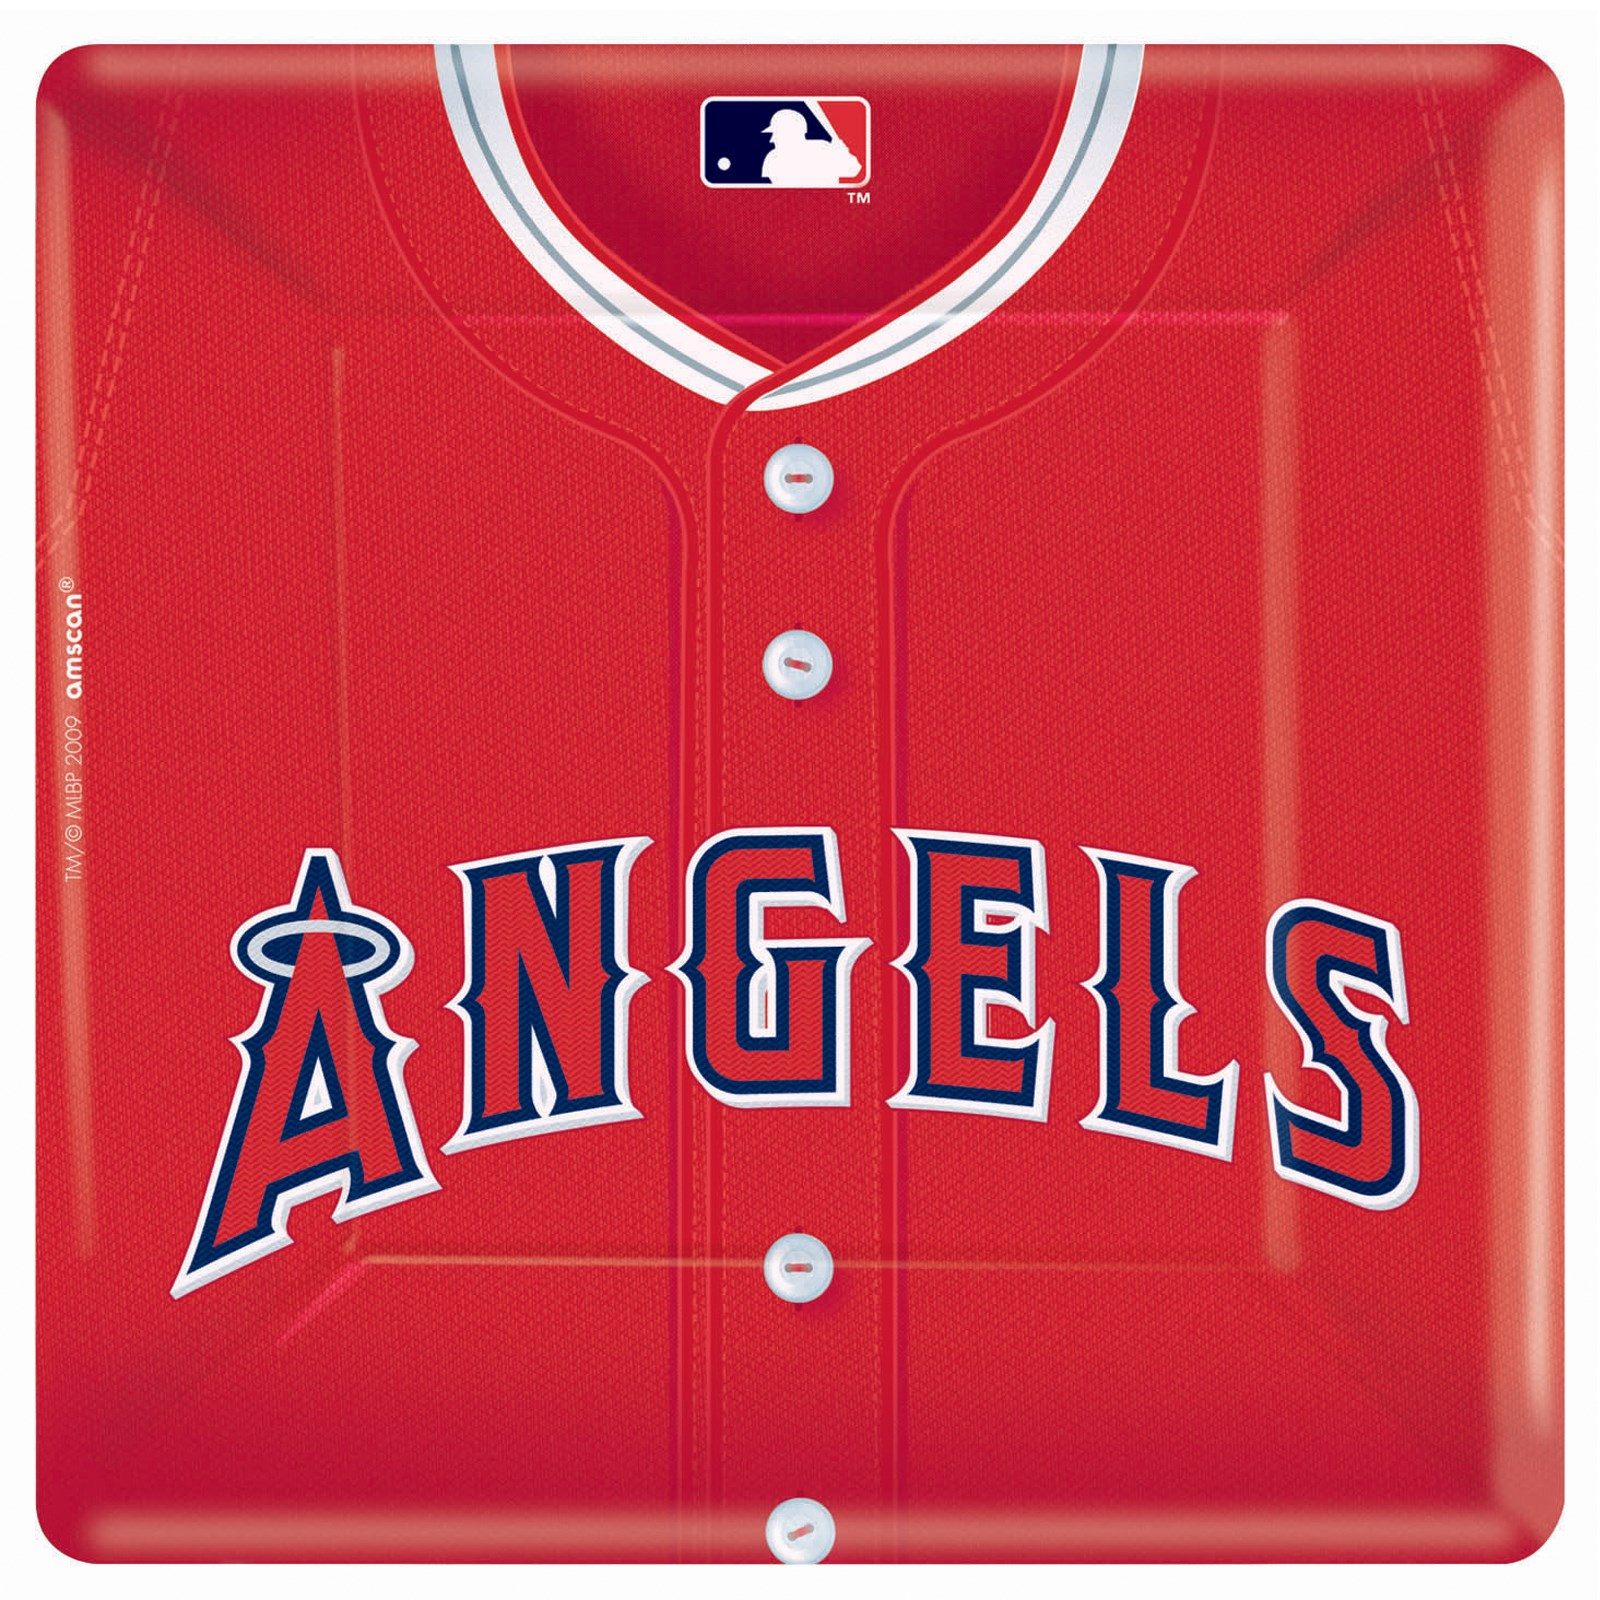 Los Angeles Angels Baseball Square Banquet Dinner Plates